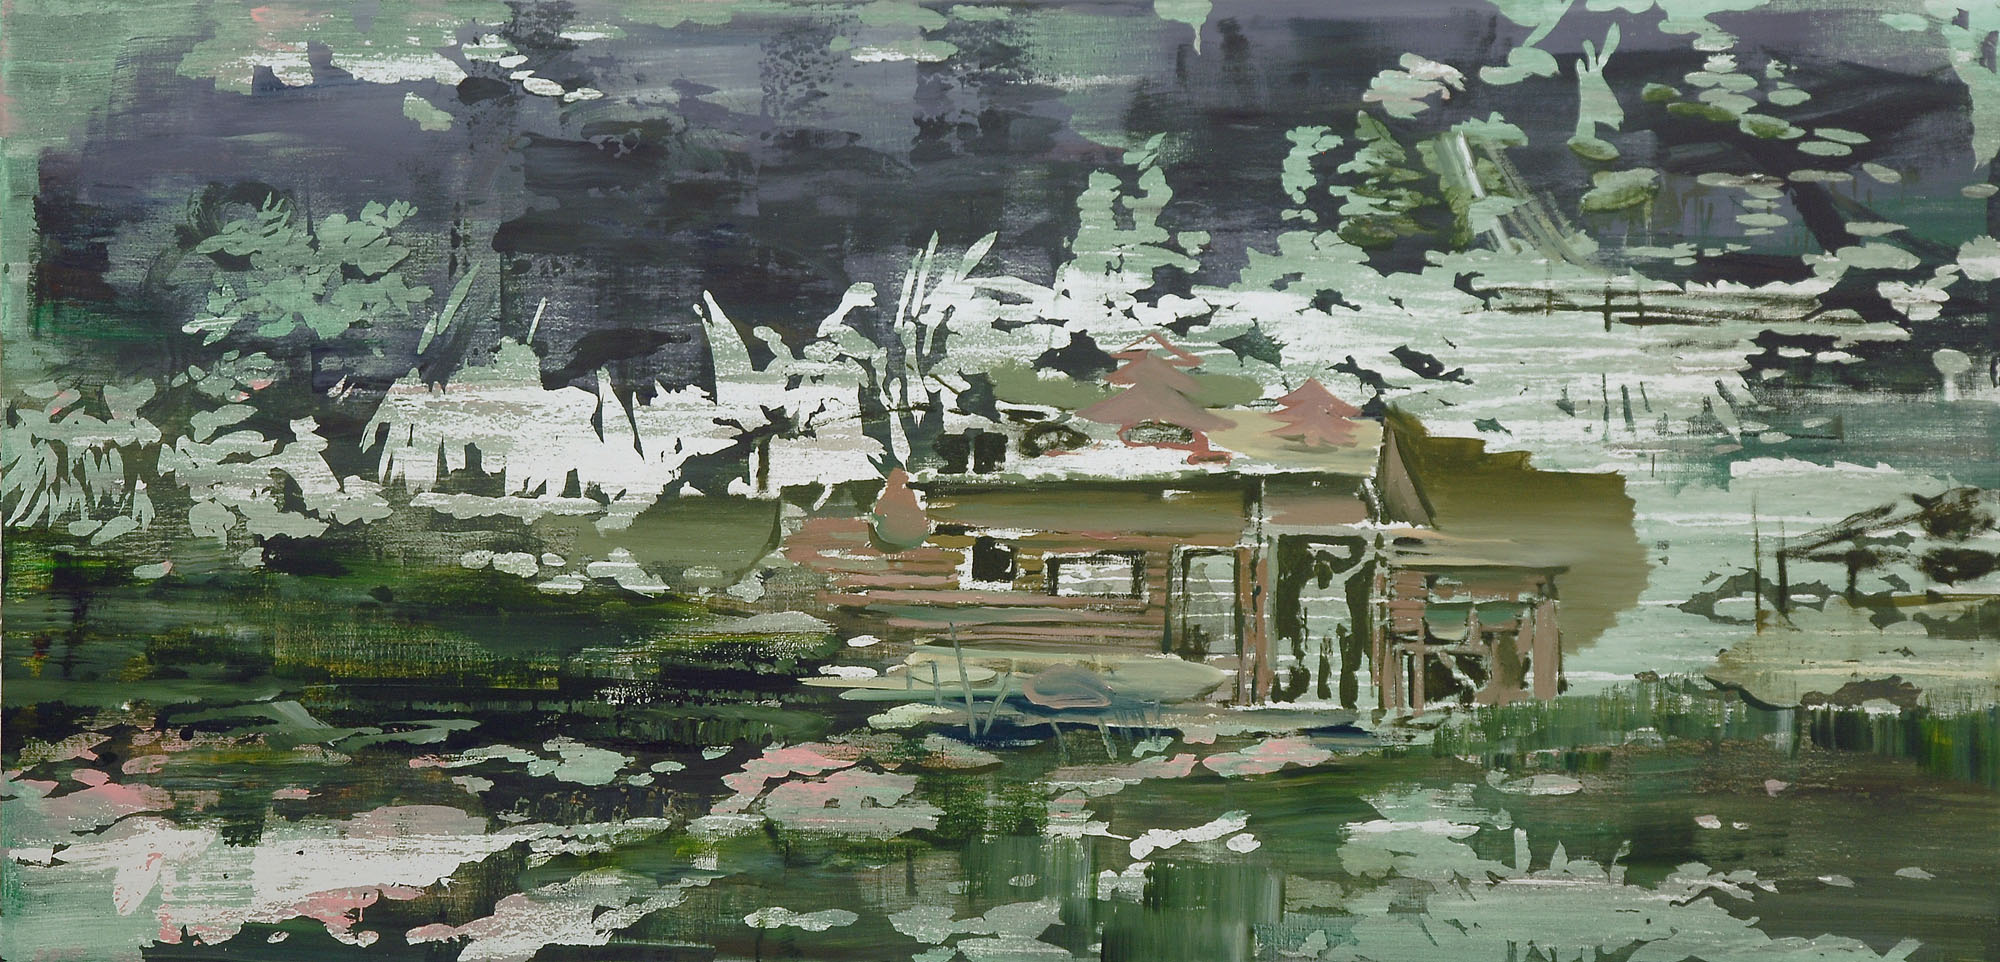 Lu Song 吕松, Young Adam, 2015, Oil on canvas 布面油画, 100 x 205 cm